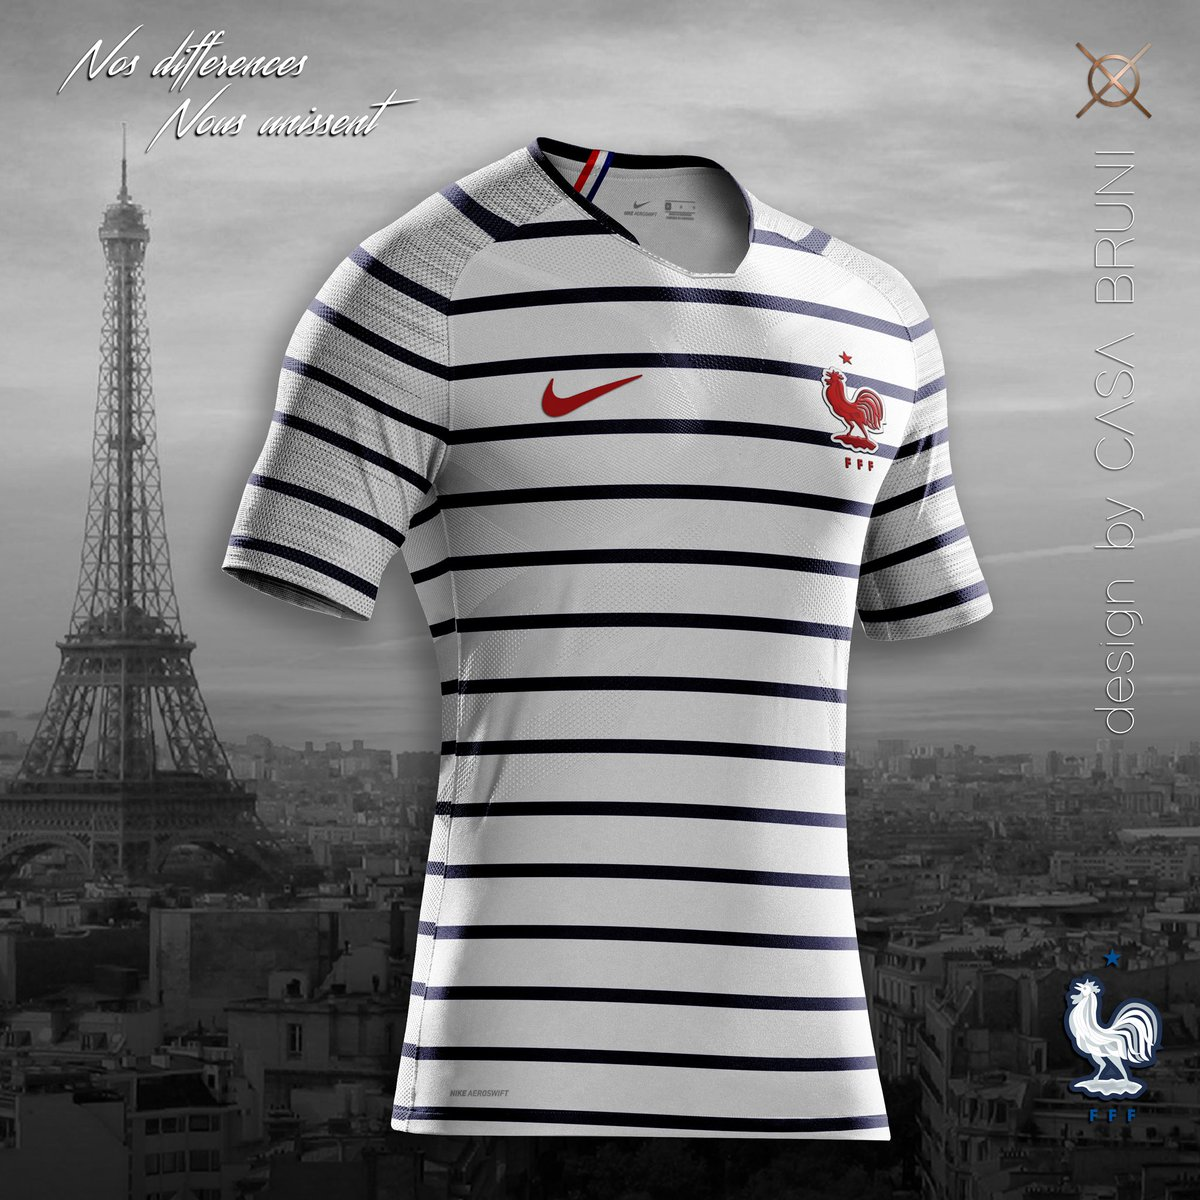 3ce597930 Casa Bruni created this concept inspired by new France Pre-match kit.  Combining with Nike's Aeroswift technology, this concept looks really good.